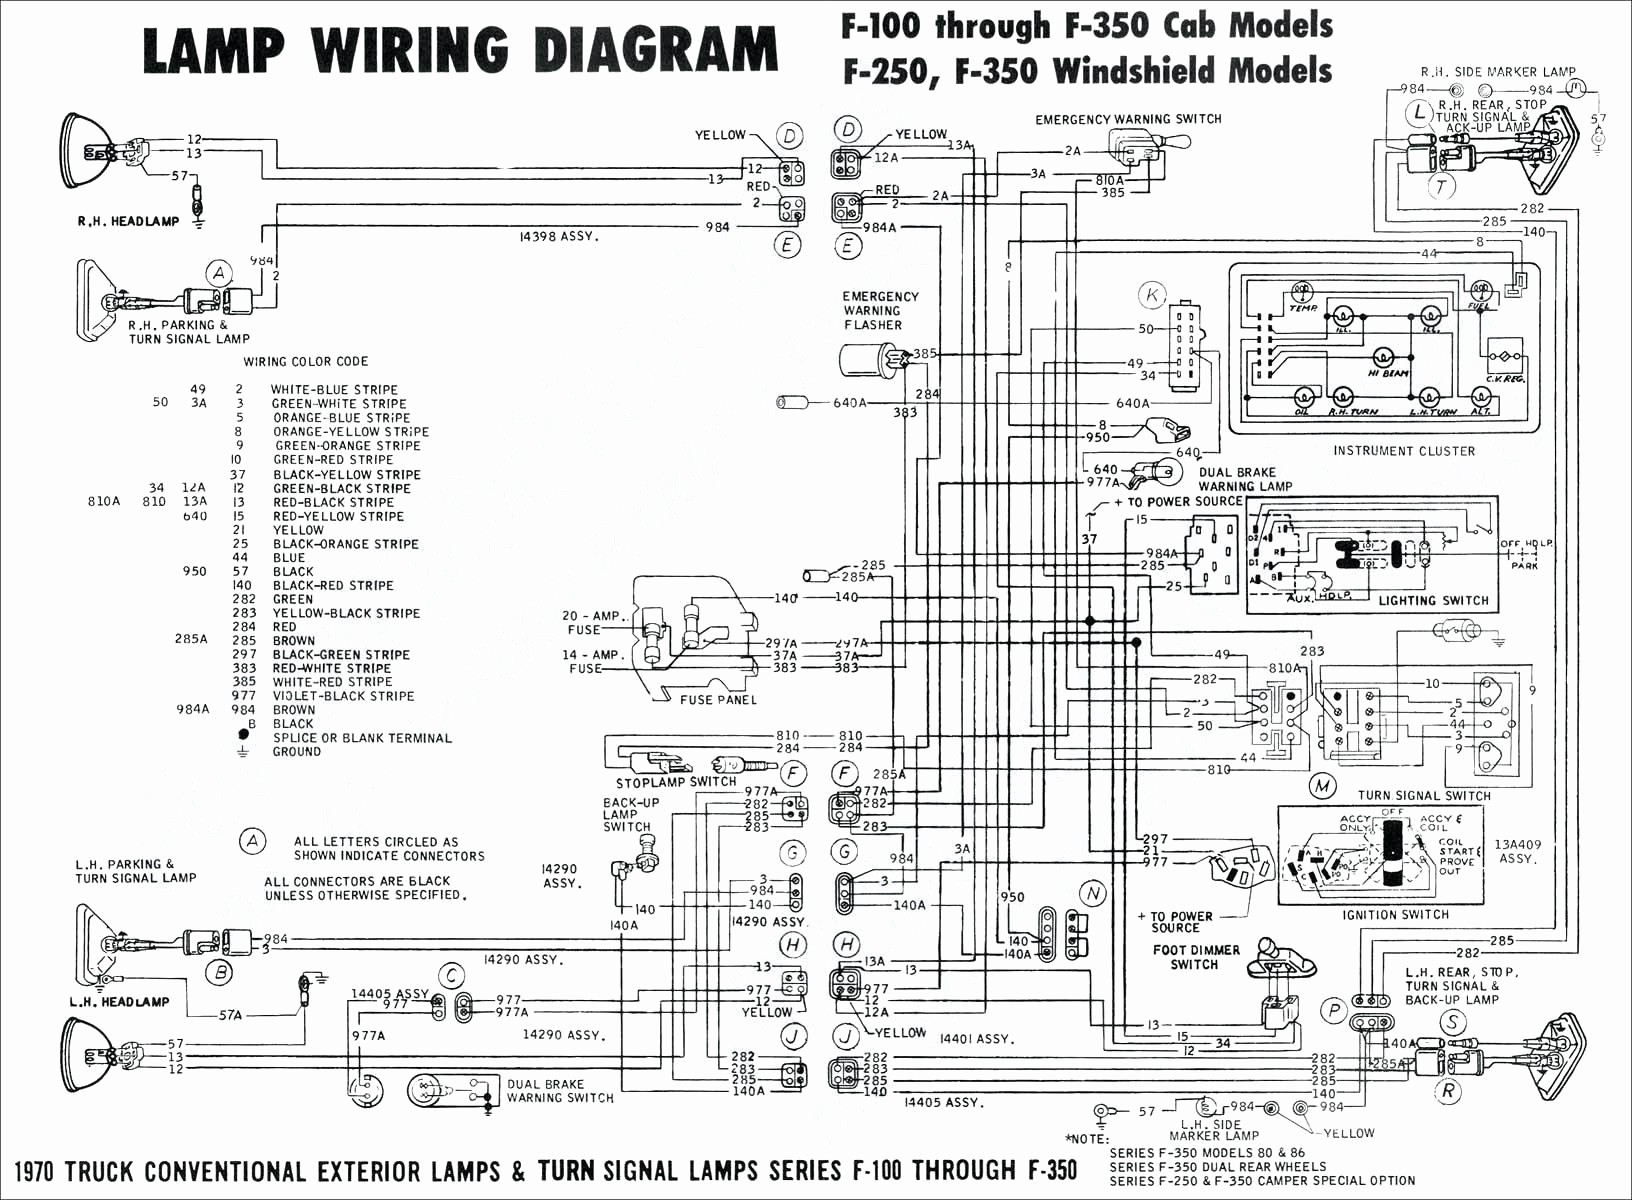 Ez Dumper Trailer Wiring Diagram | Wiring Diagram - Ez Dumper Trailer Wiring Diagram